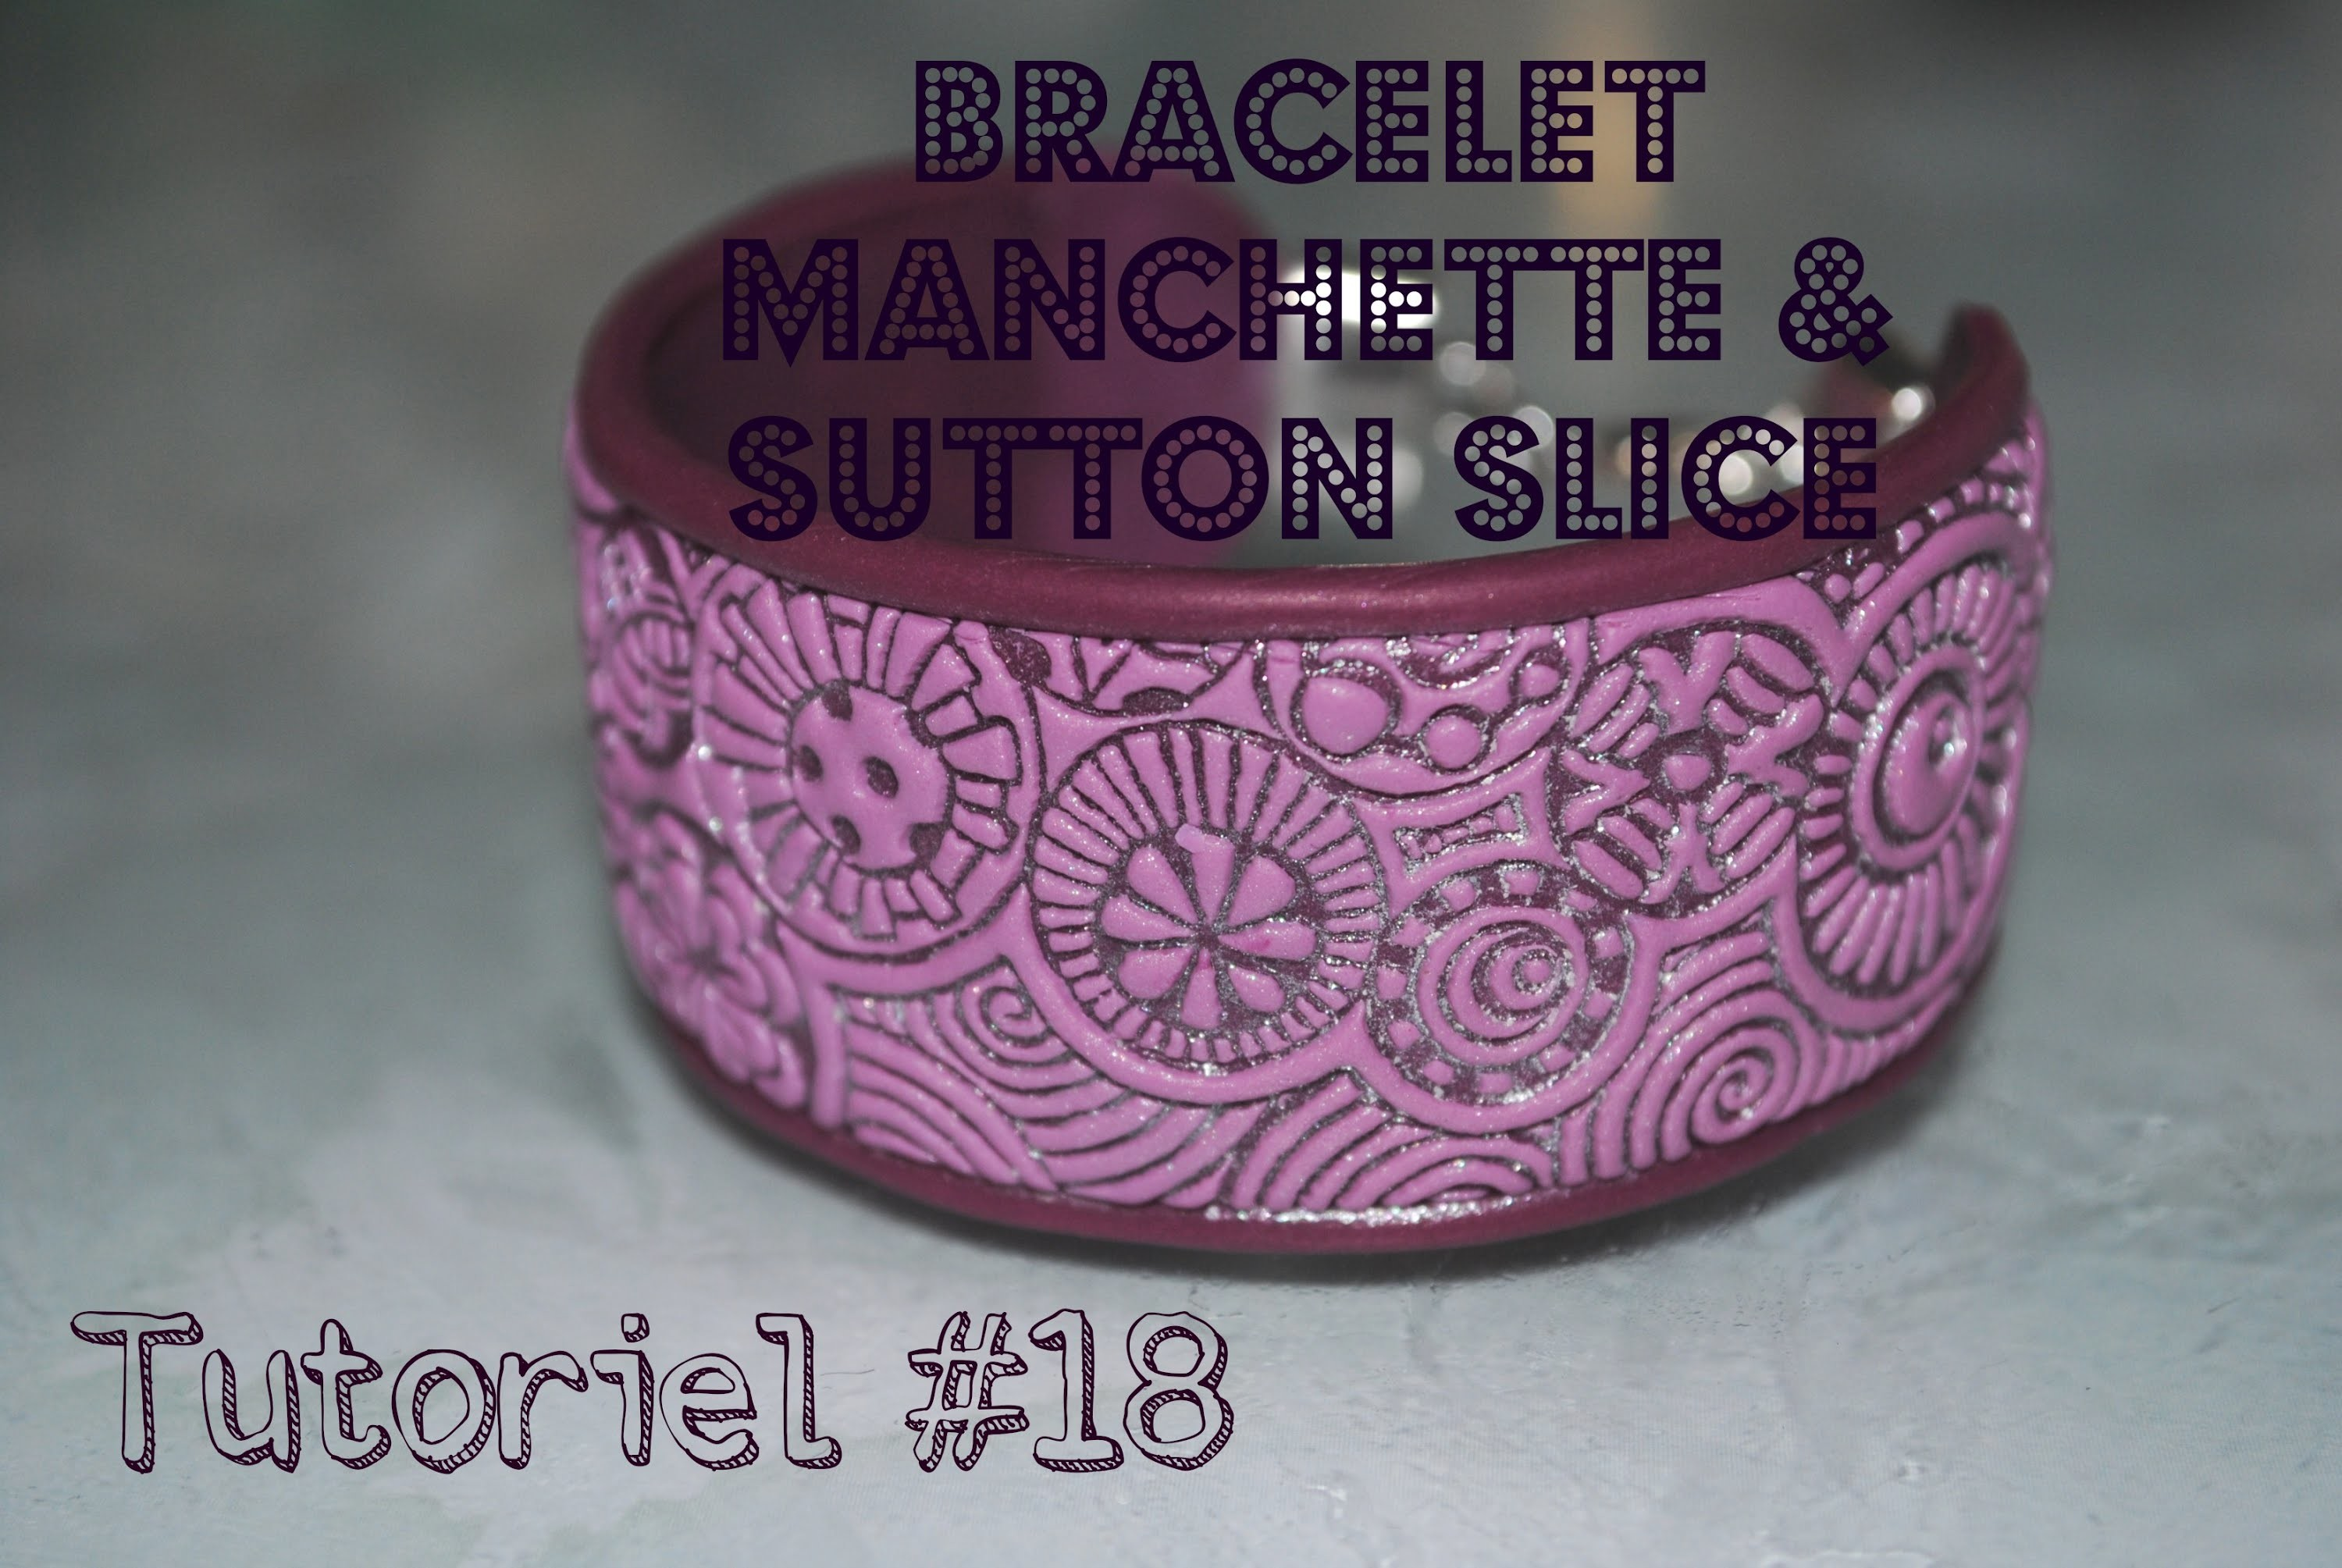 Tuto #18 : bracelet manchette & technique sutton slice